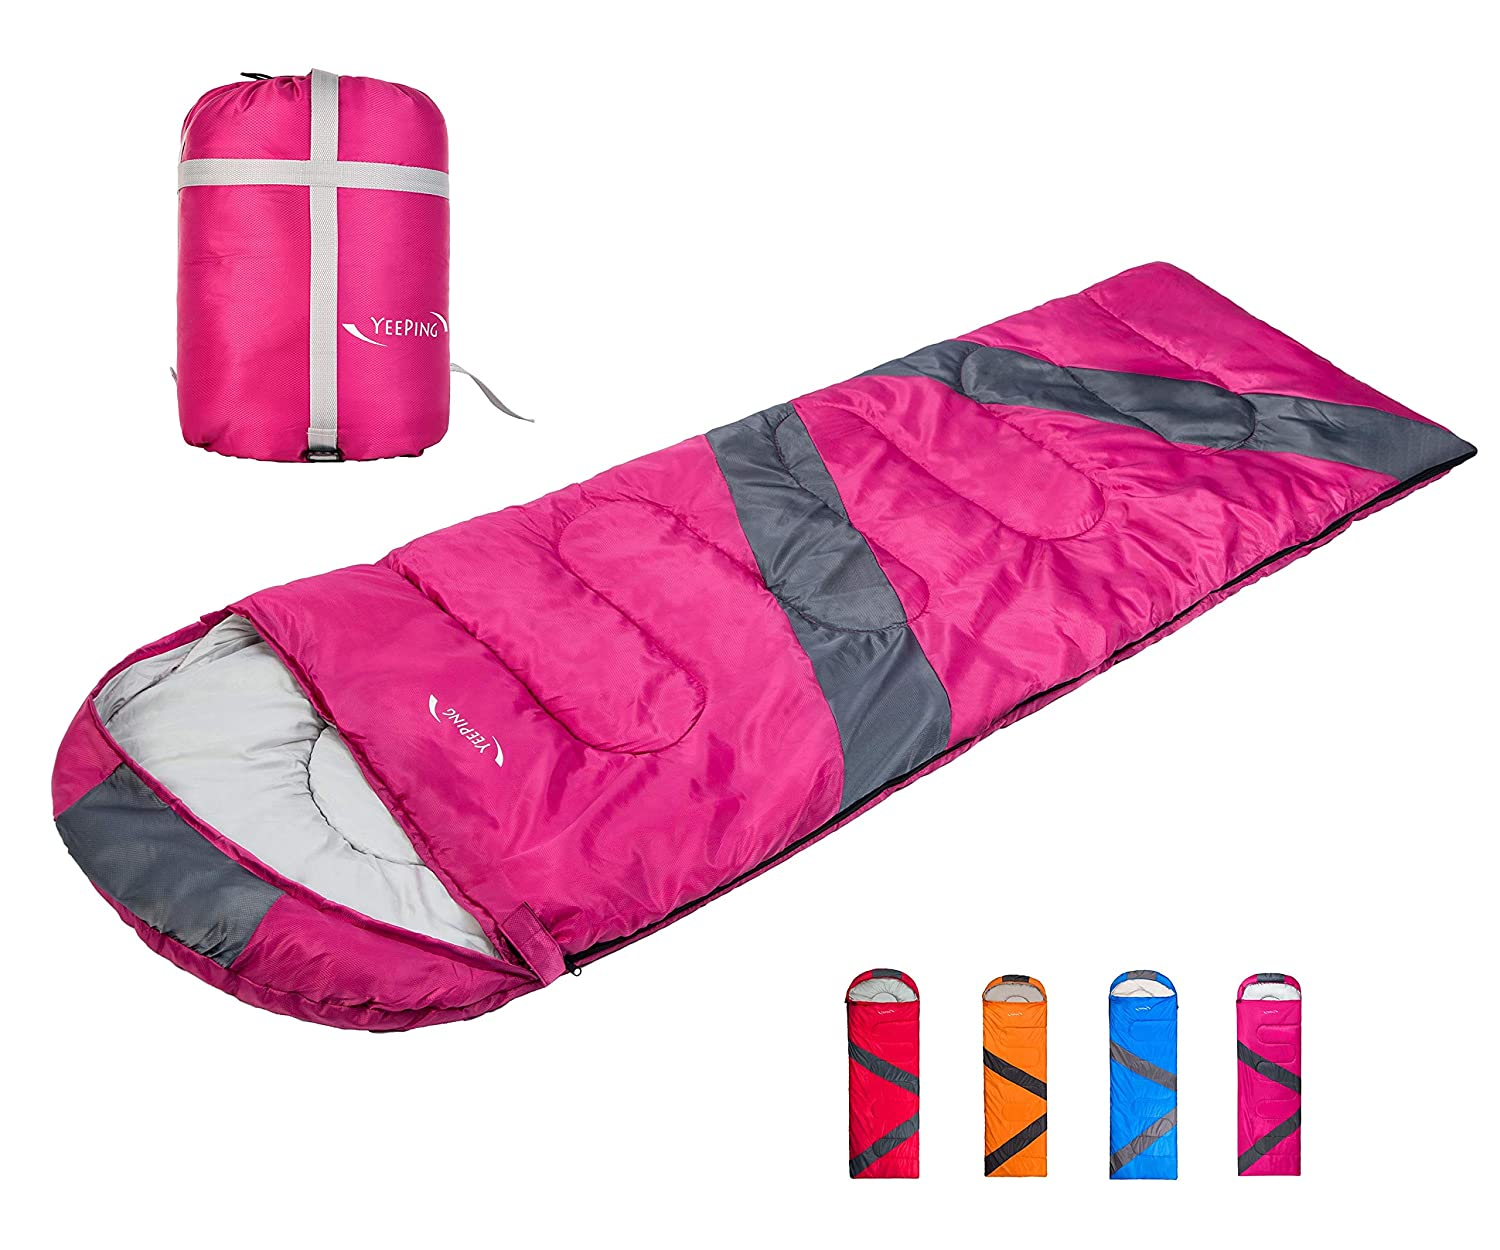 Yeeping 3-4 Season Envelope Sleeping Bag with Compression Sack – Waterproof, 32 Degree Fahrenheit, Great for Kids, Youth and Adults, Hiking Camping Traveling, Warm Cool Weather, Lightweight